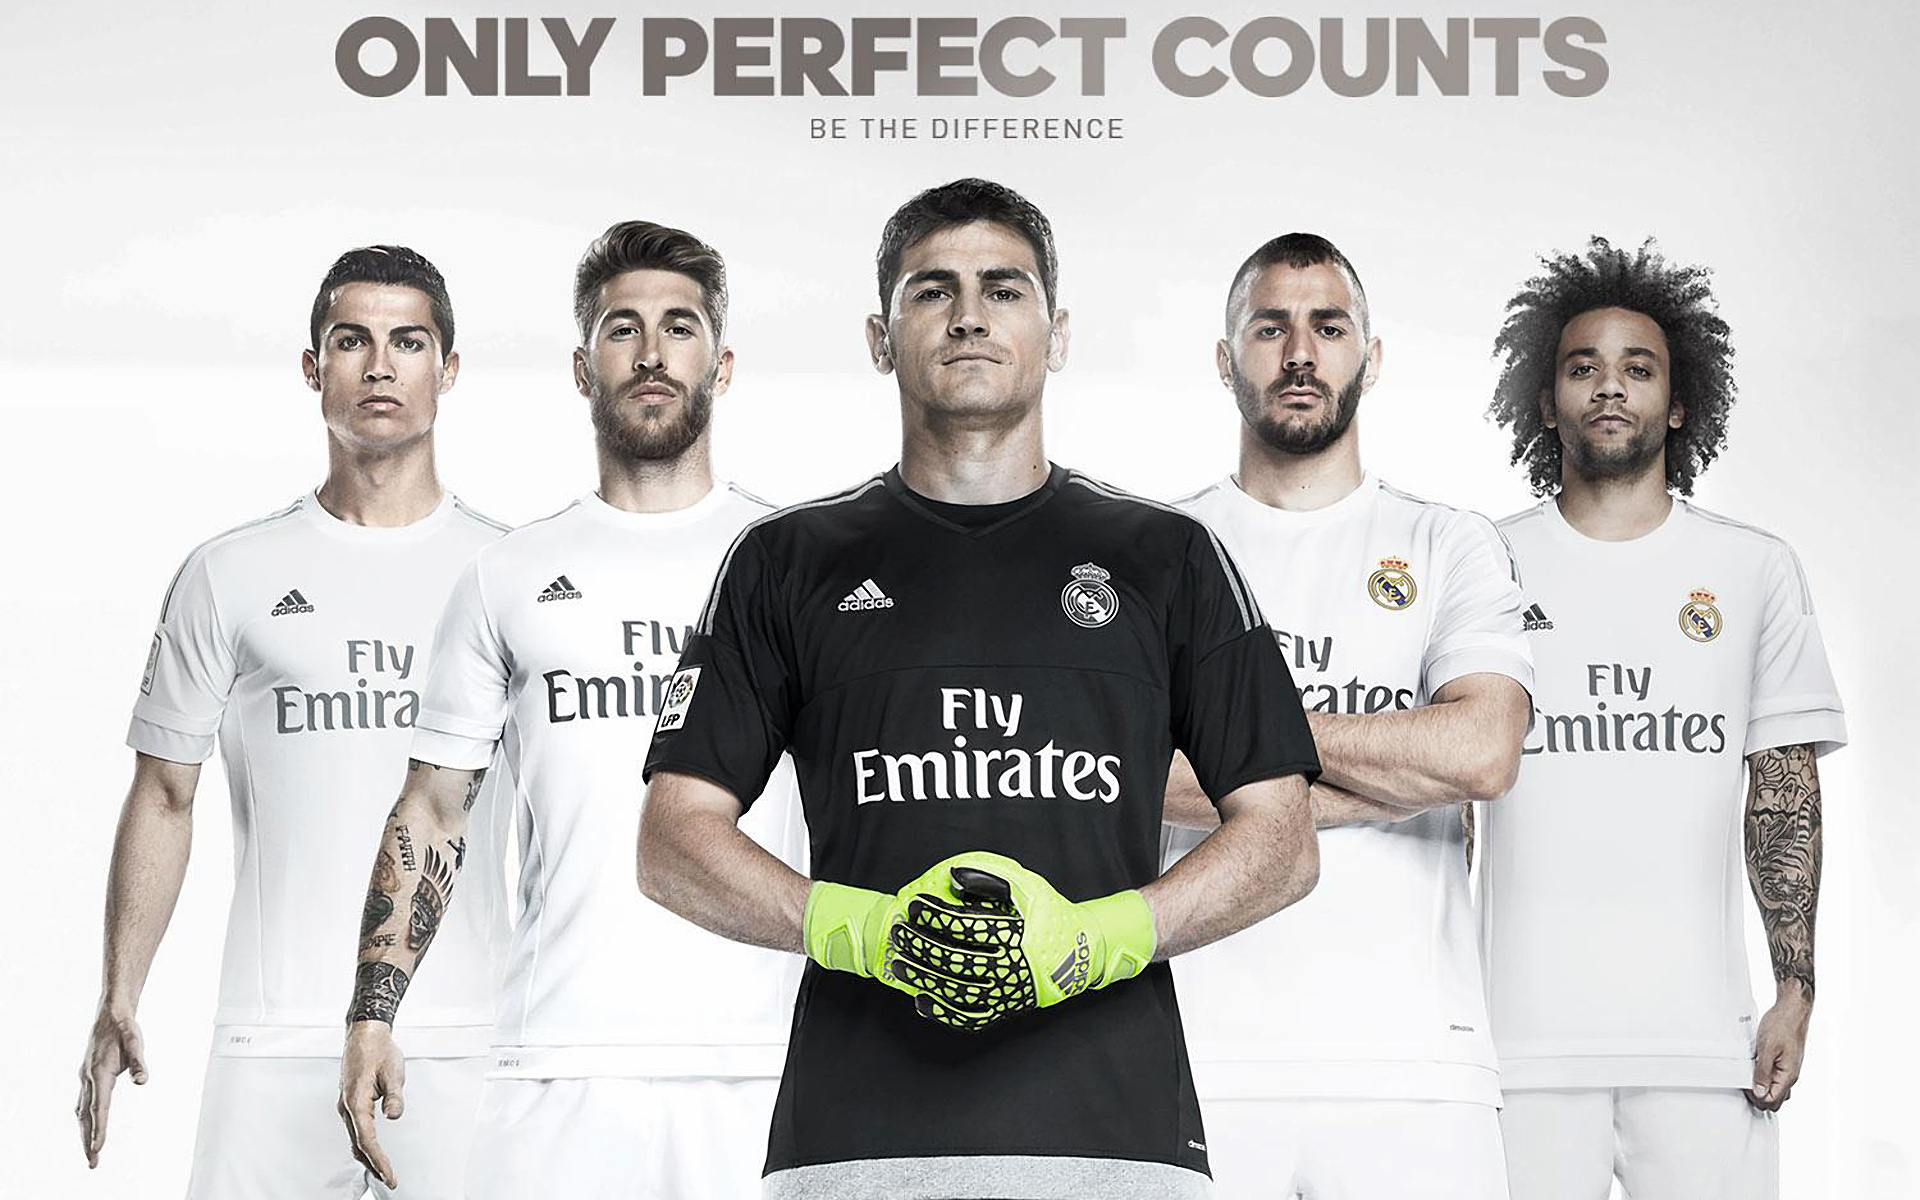 Real madrid cf 2015 2016 adidas home kit wallpapers for Wallpaper 2016 home